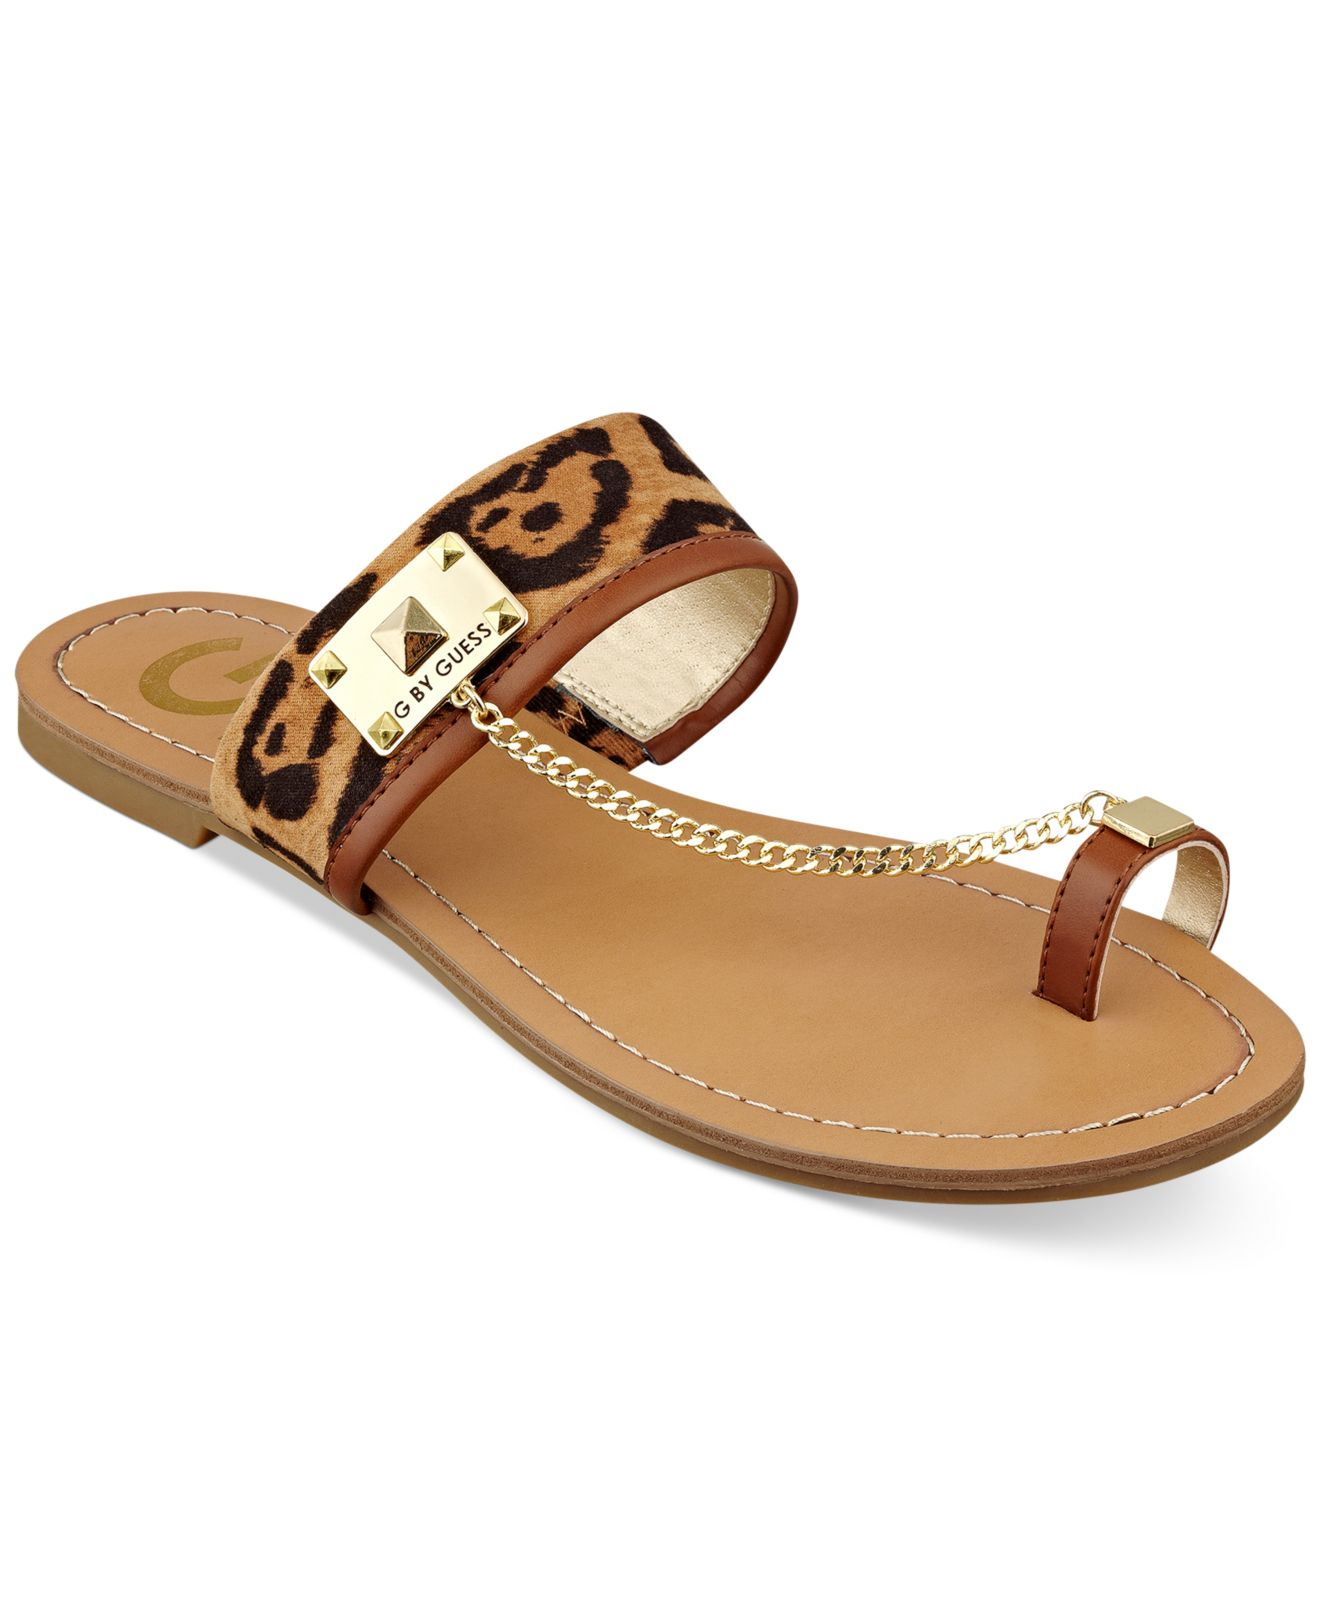 a2089f4d3231 Lyst - G by Guess Women S Lucia Toe Ring Flat Sandals